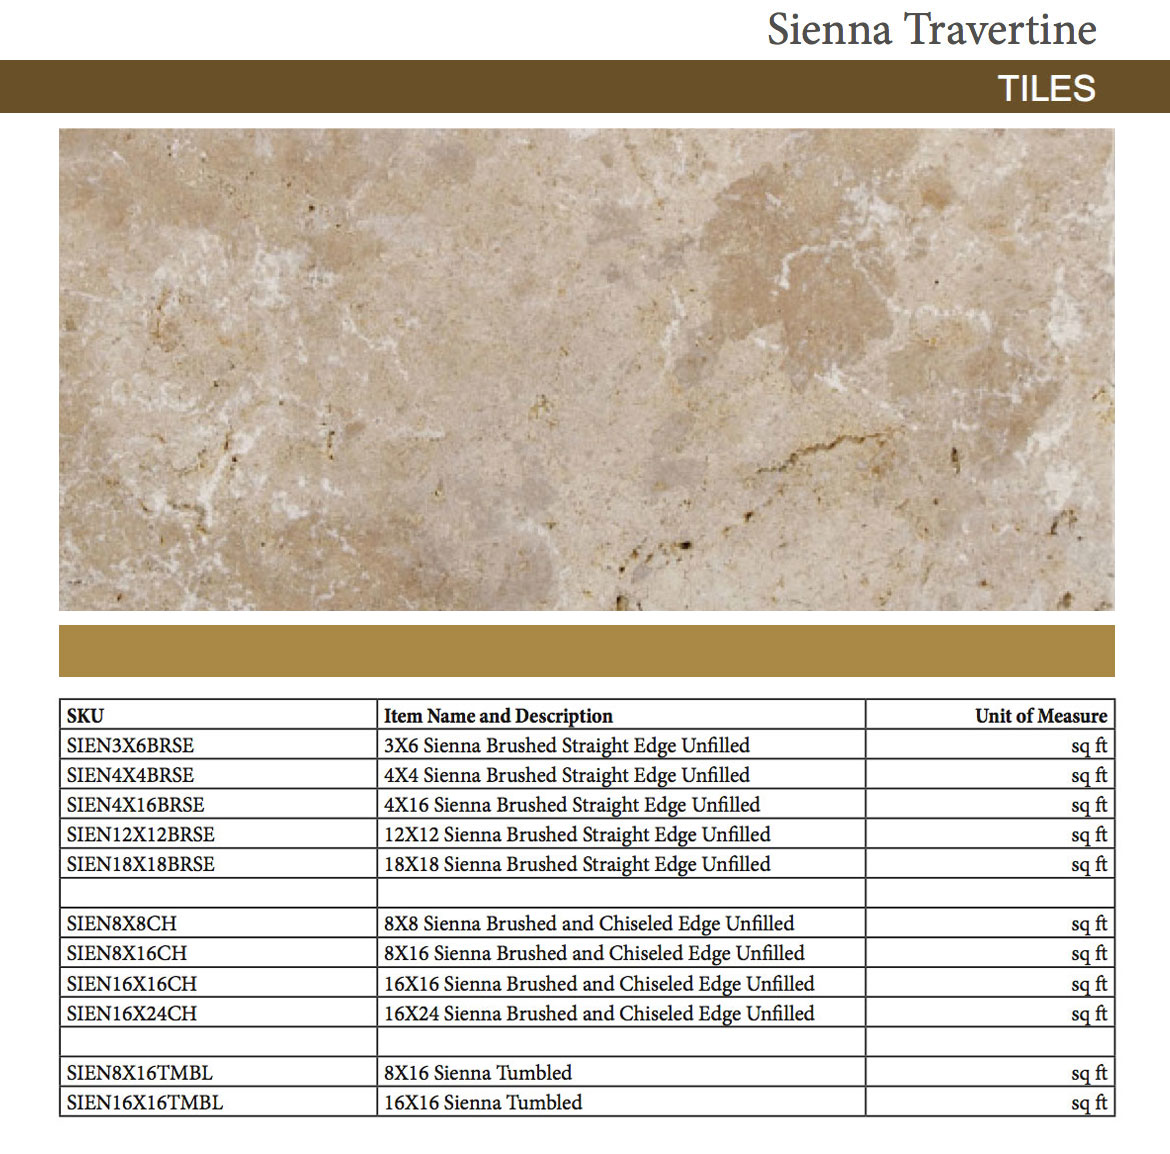 Sienna-Travertine-Tiles